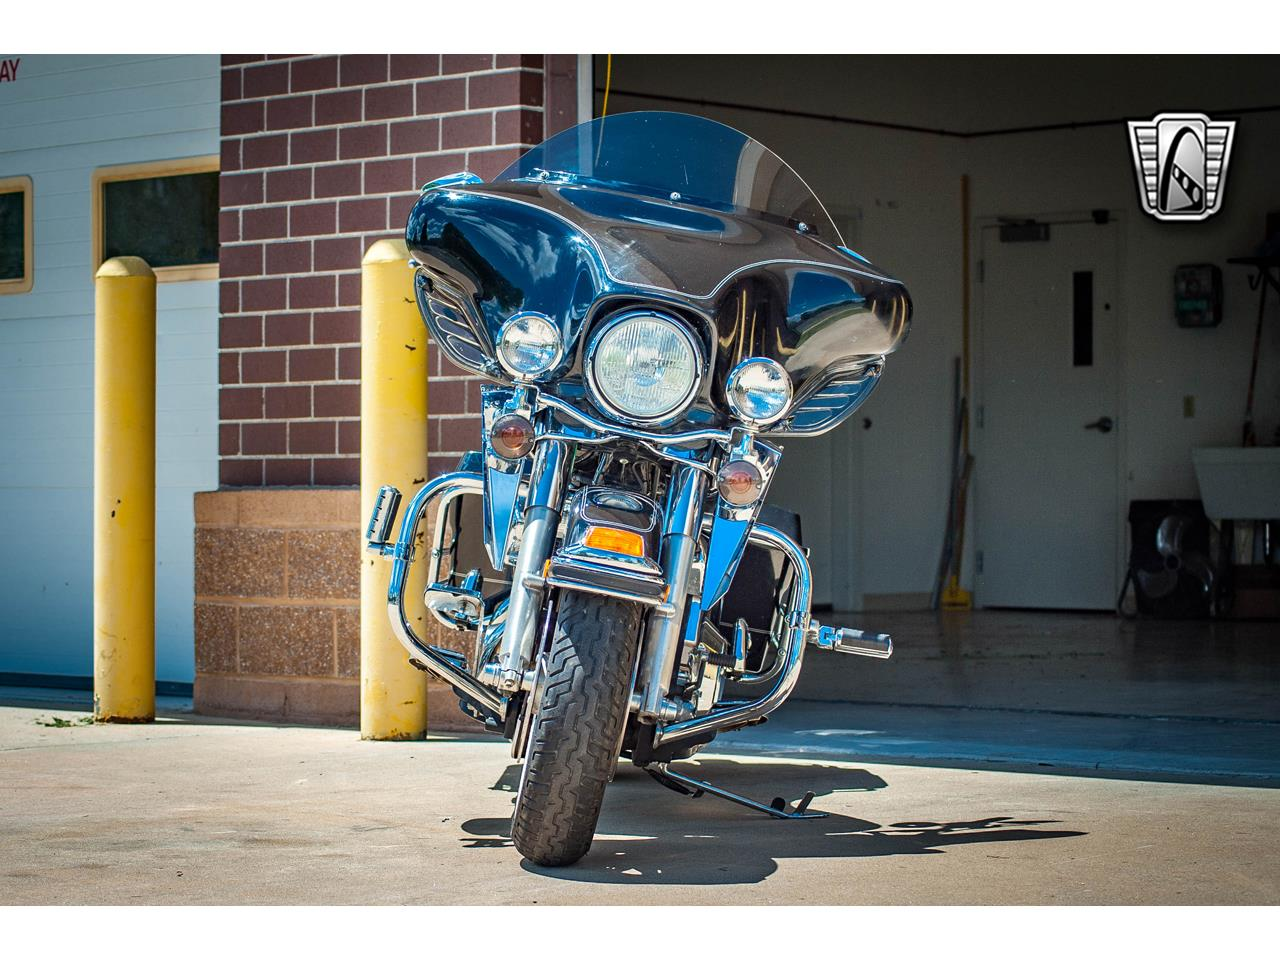 2004 Harley-Davidson Motorcycle for sale in O'Fallon, IL – photo 55